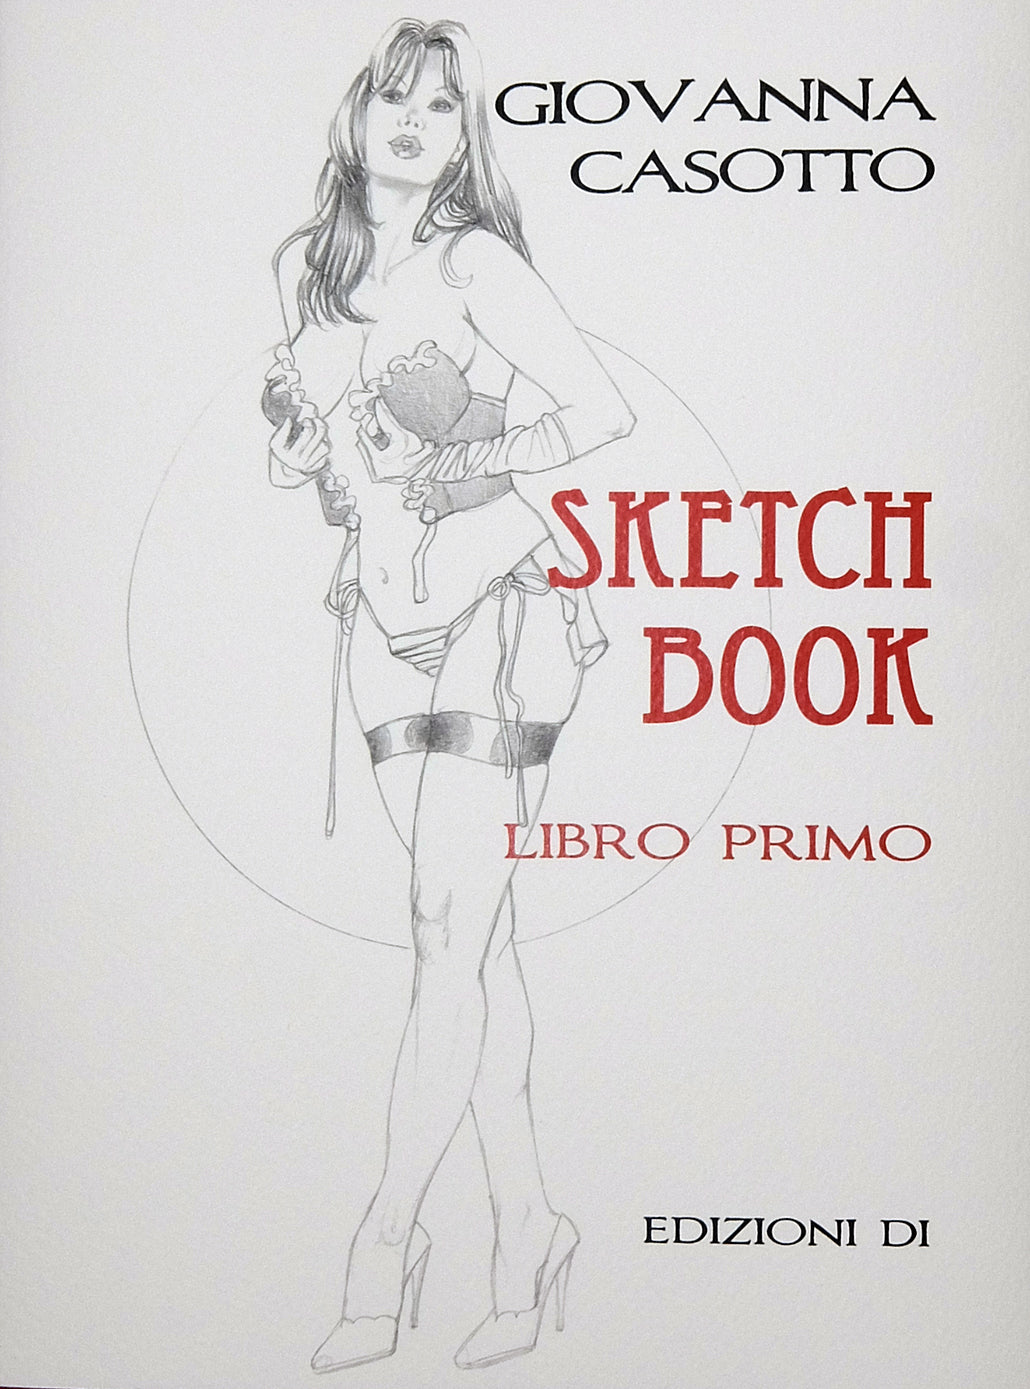 Casotto Volume Sketch Book